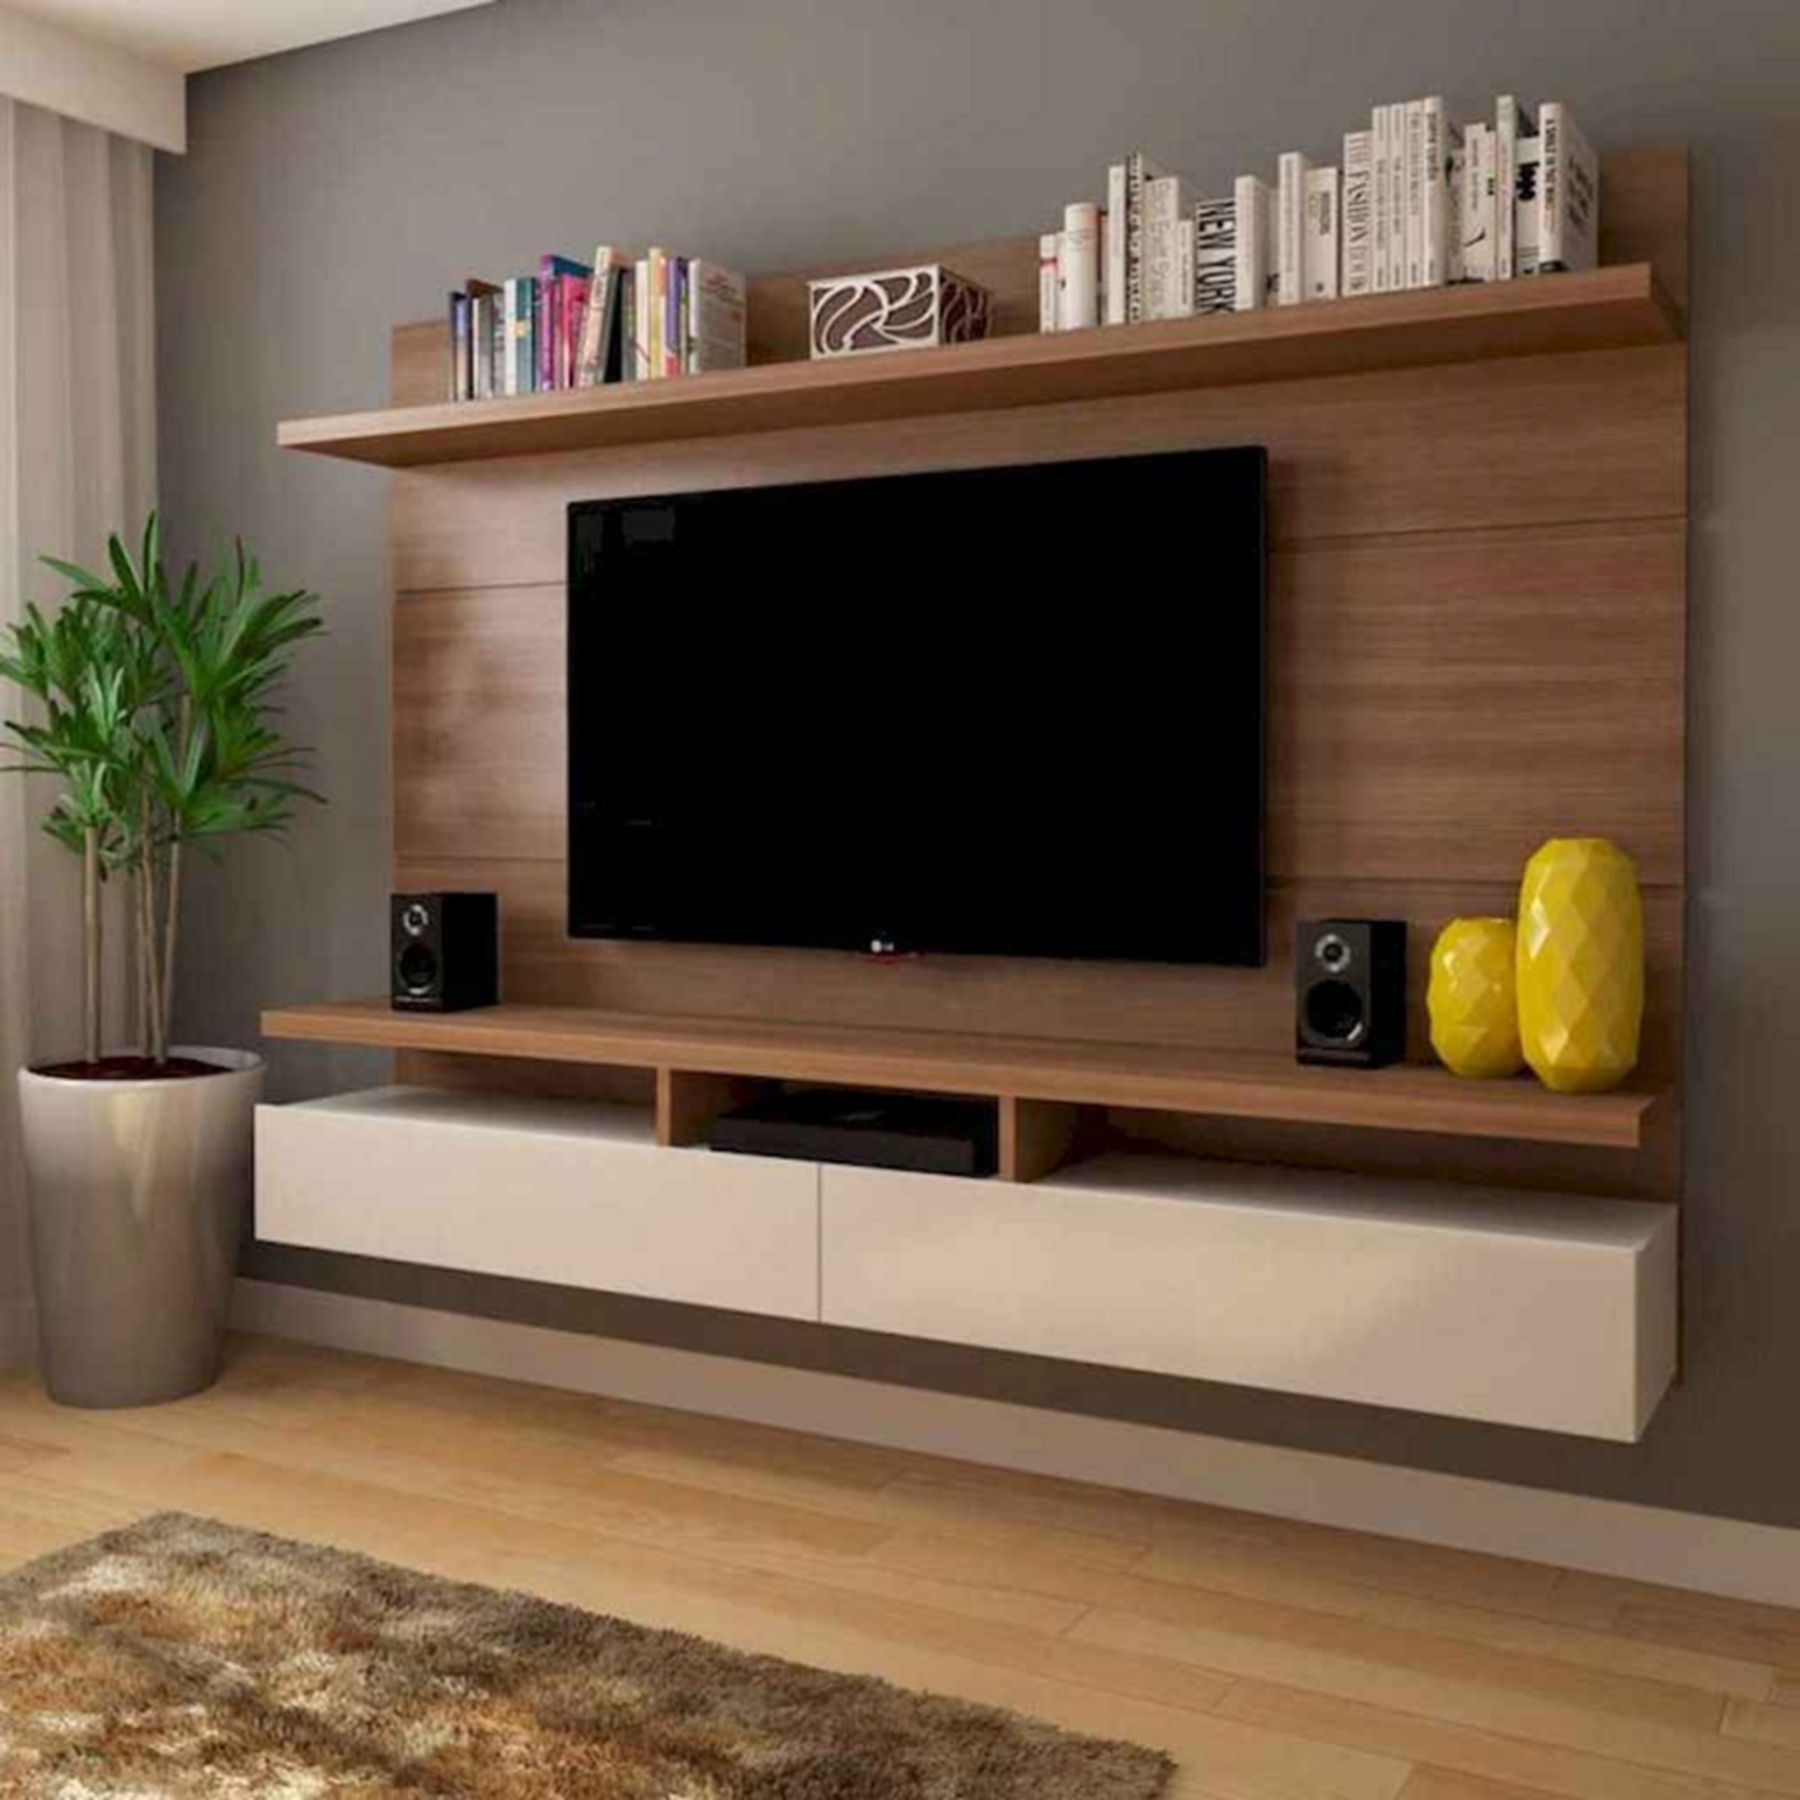 10 Minimalist Rack Tv Design Ideas For Your Living Room Bedroom Tv Wall Tv Room Design Living Room Tv Unit Designs